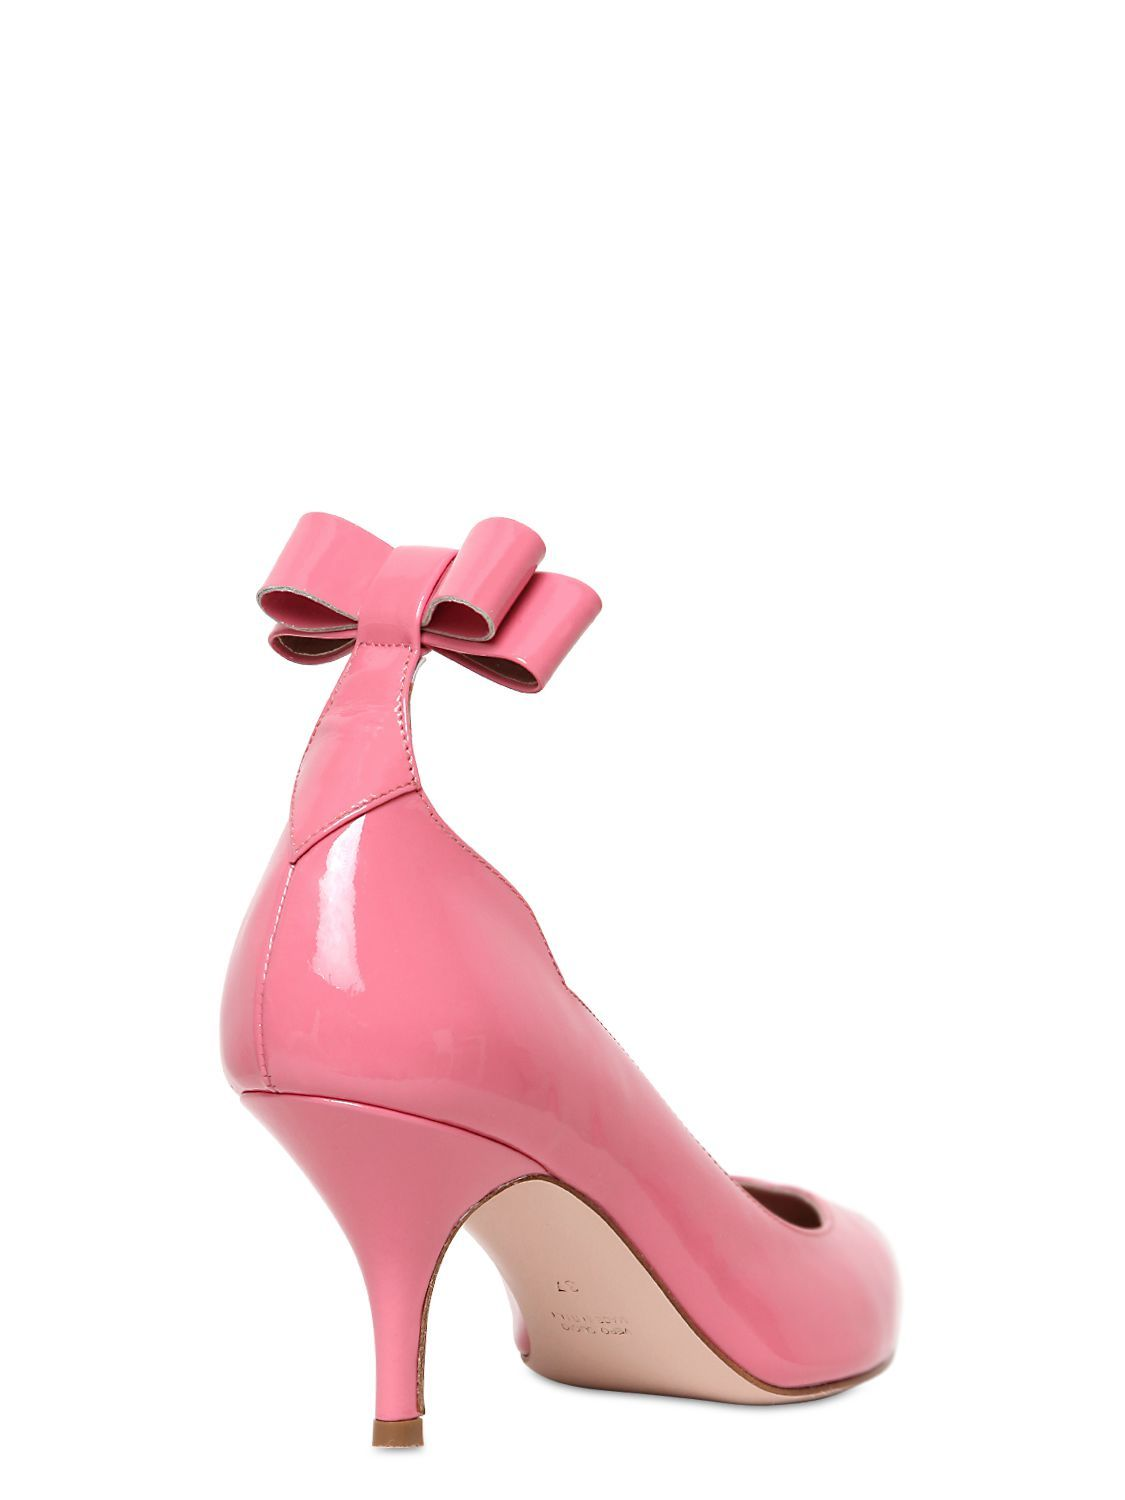 3e97f2baea8 Red Valentino 70mm Patent Leather Bow Pumps in Pink